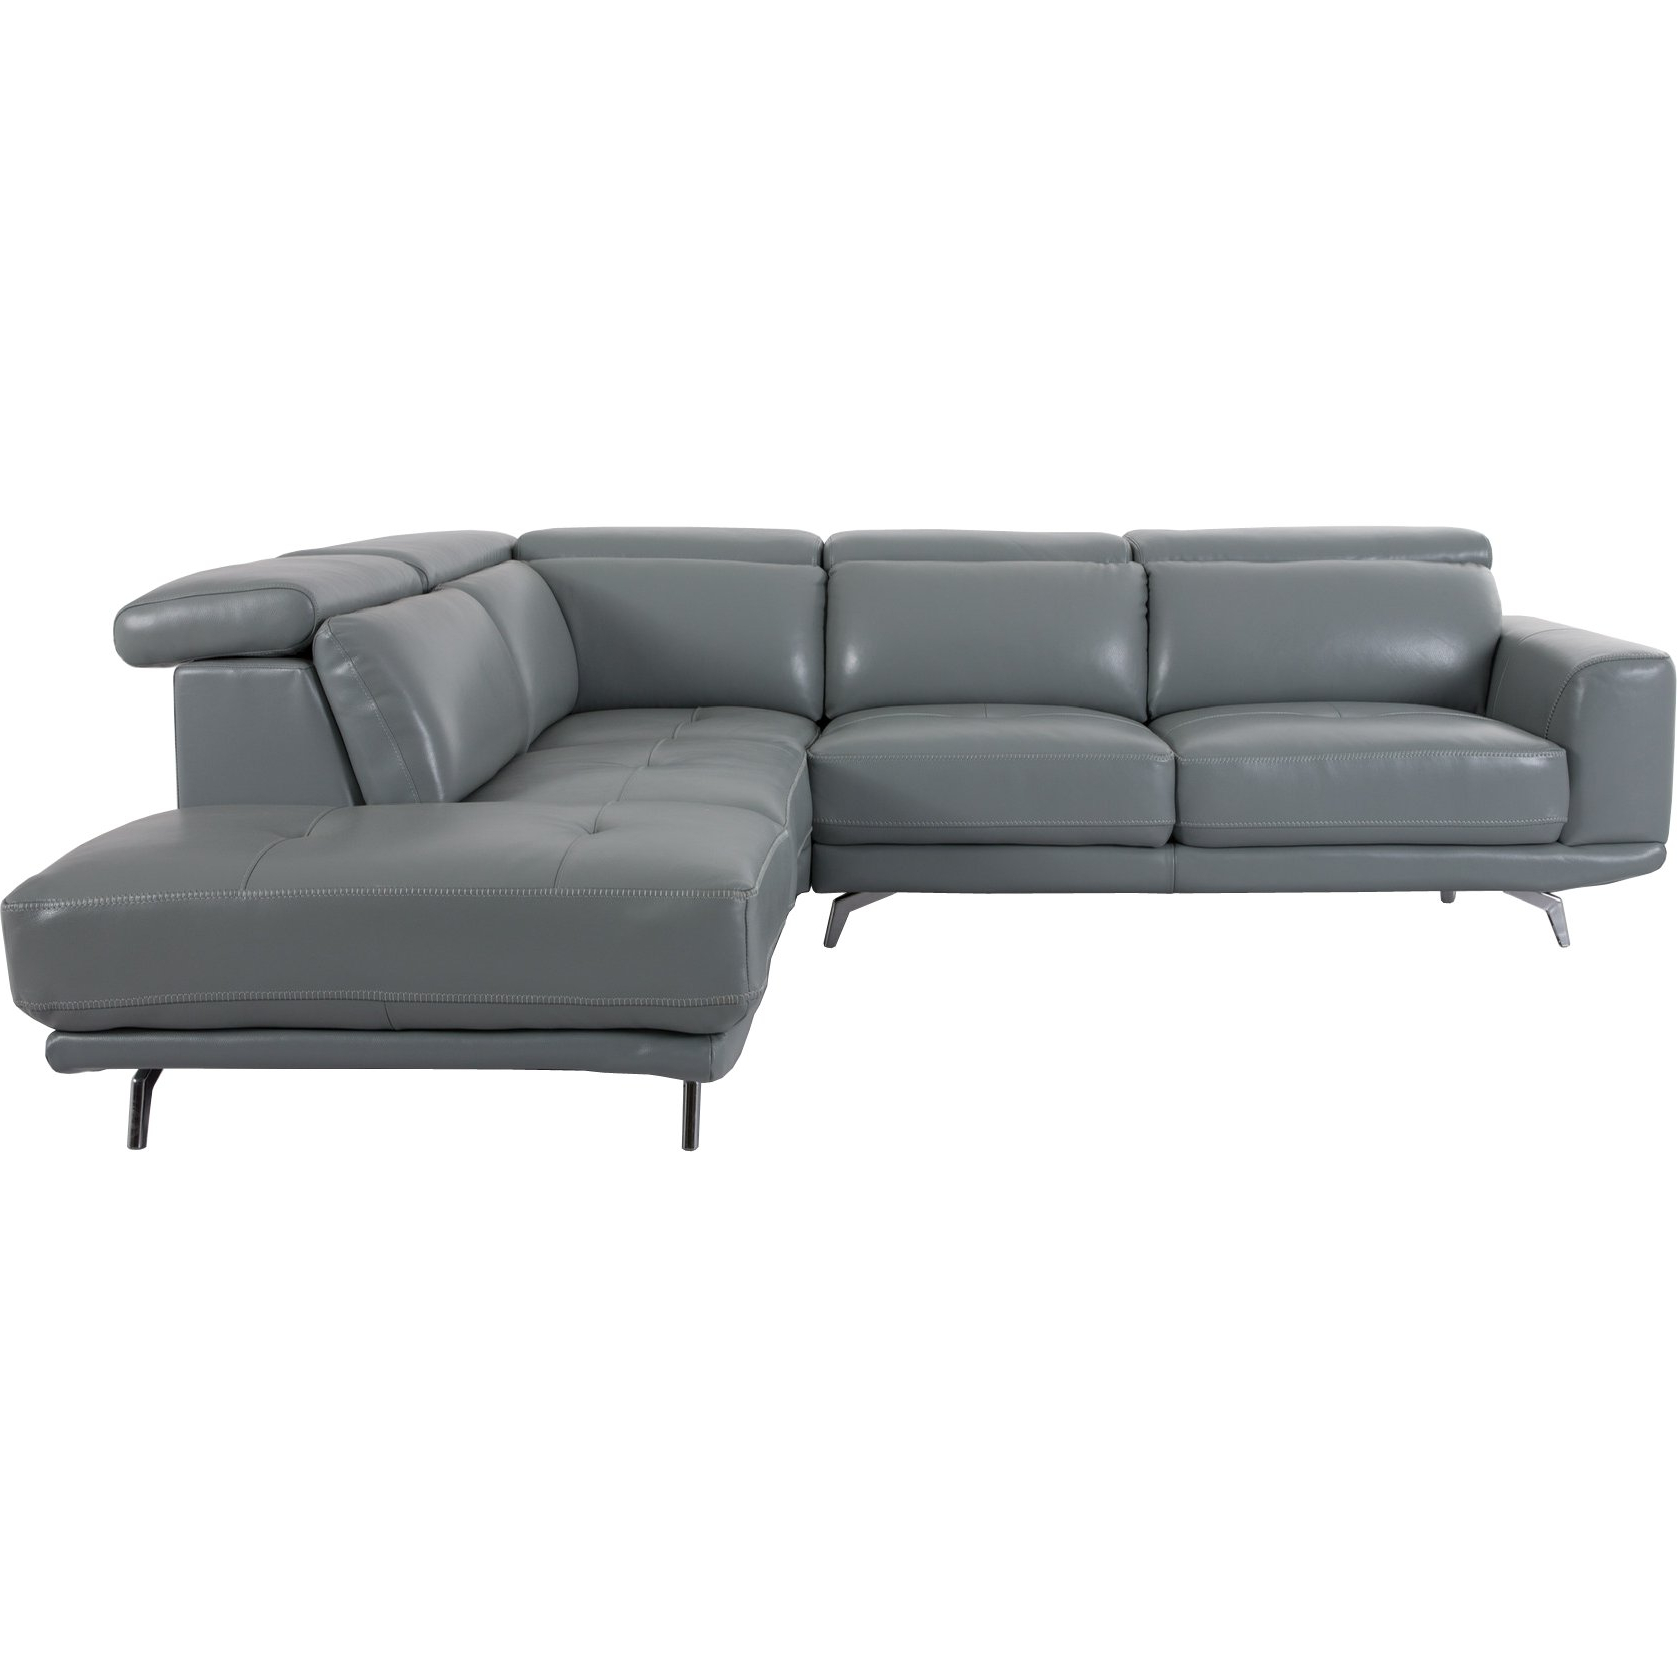 Thesofasite.co Intended For Clyde Grey Leather 3 Piece Power Reclining Sectionals With Pwr Hdrst & Usb (Gallery 5 of 20)